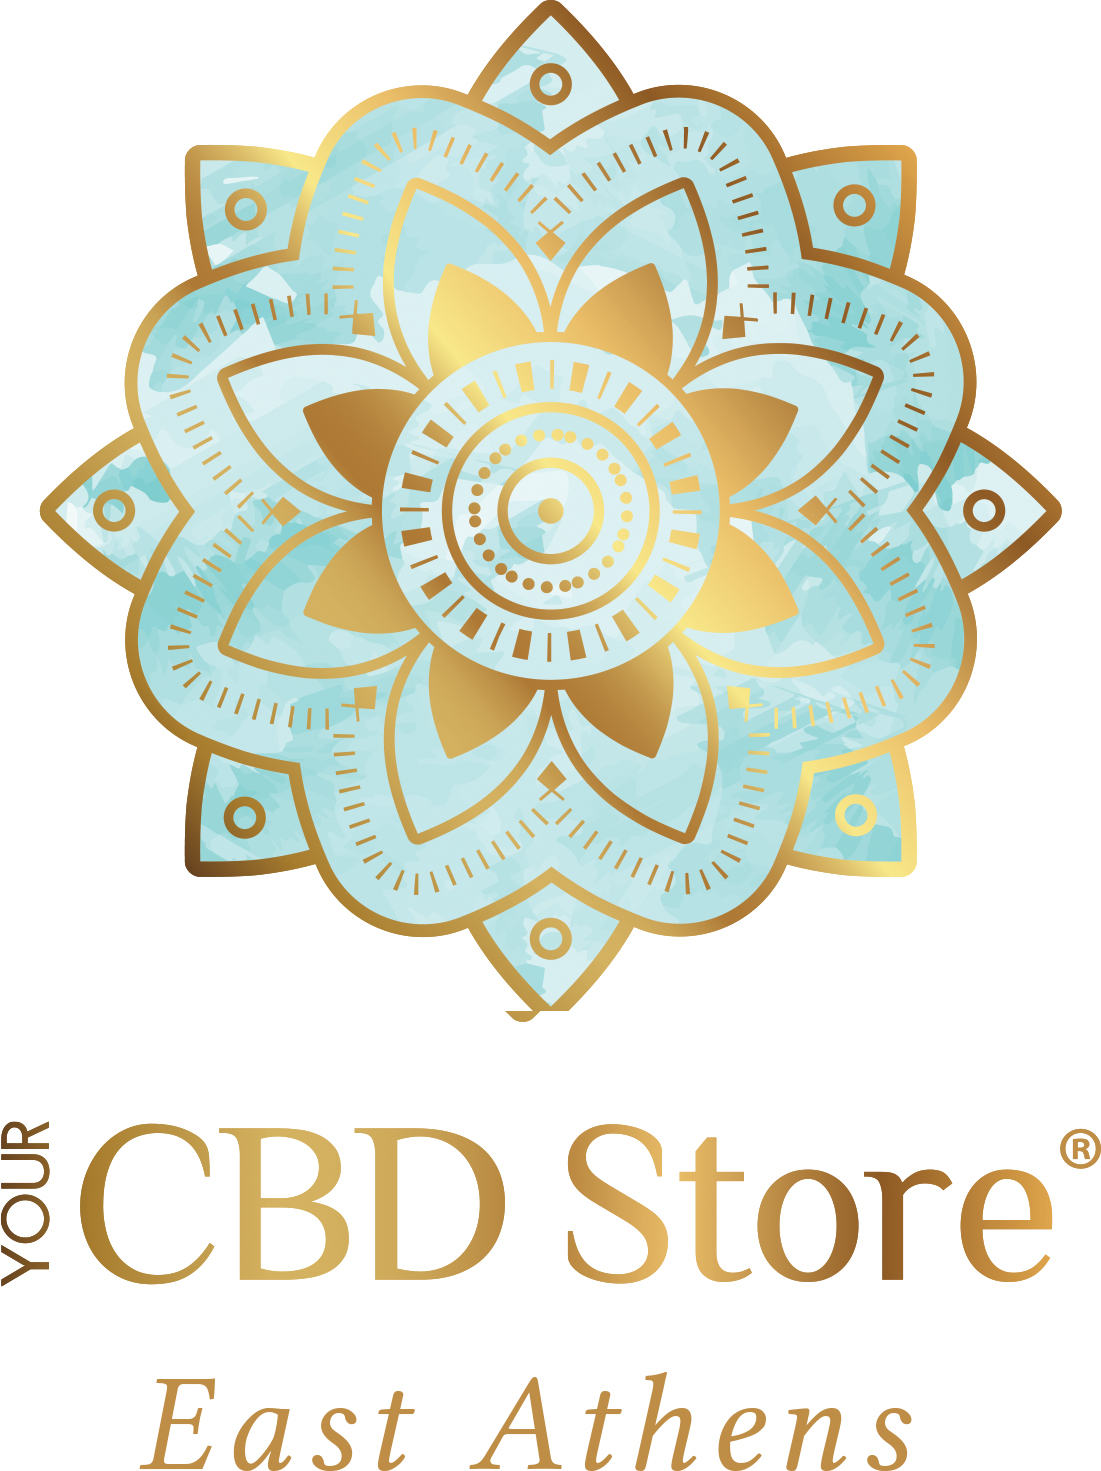 your-cbd-store-logo.jpg